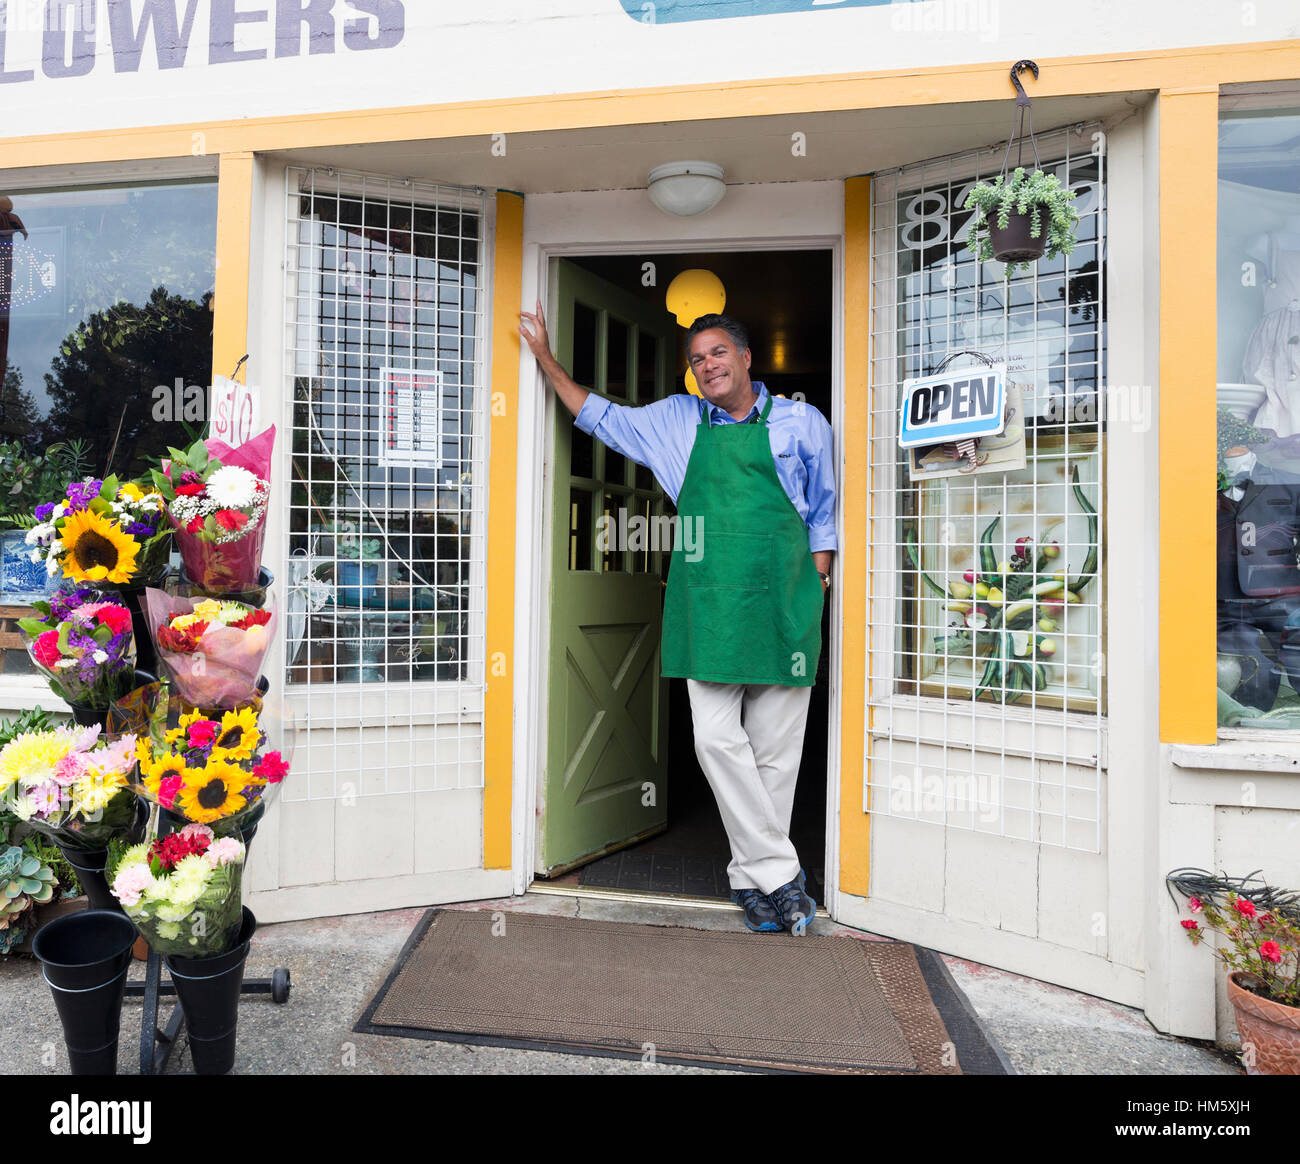 Portrait of male florist standing in doorway of flower shop - Stock Image